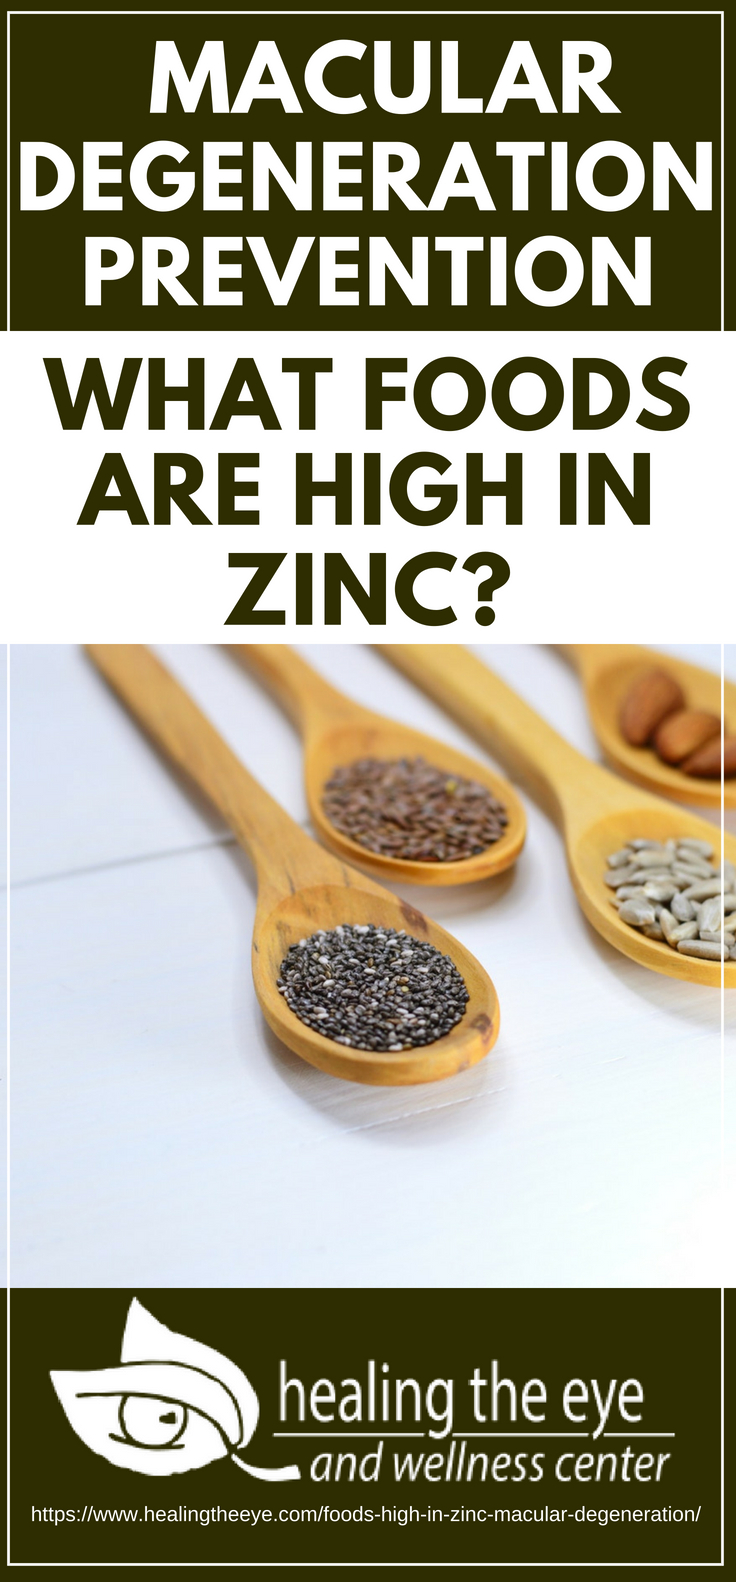 Pinterest Placard   Macular Degeneration Prevention   What foods are high in zinc?